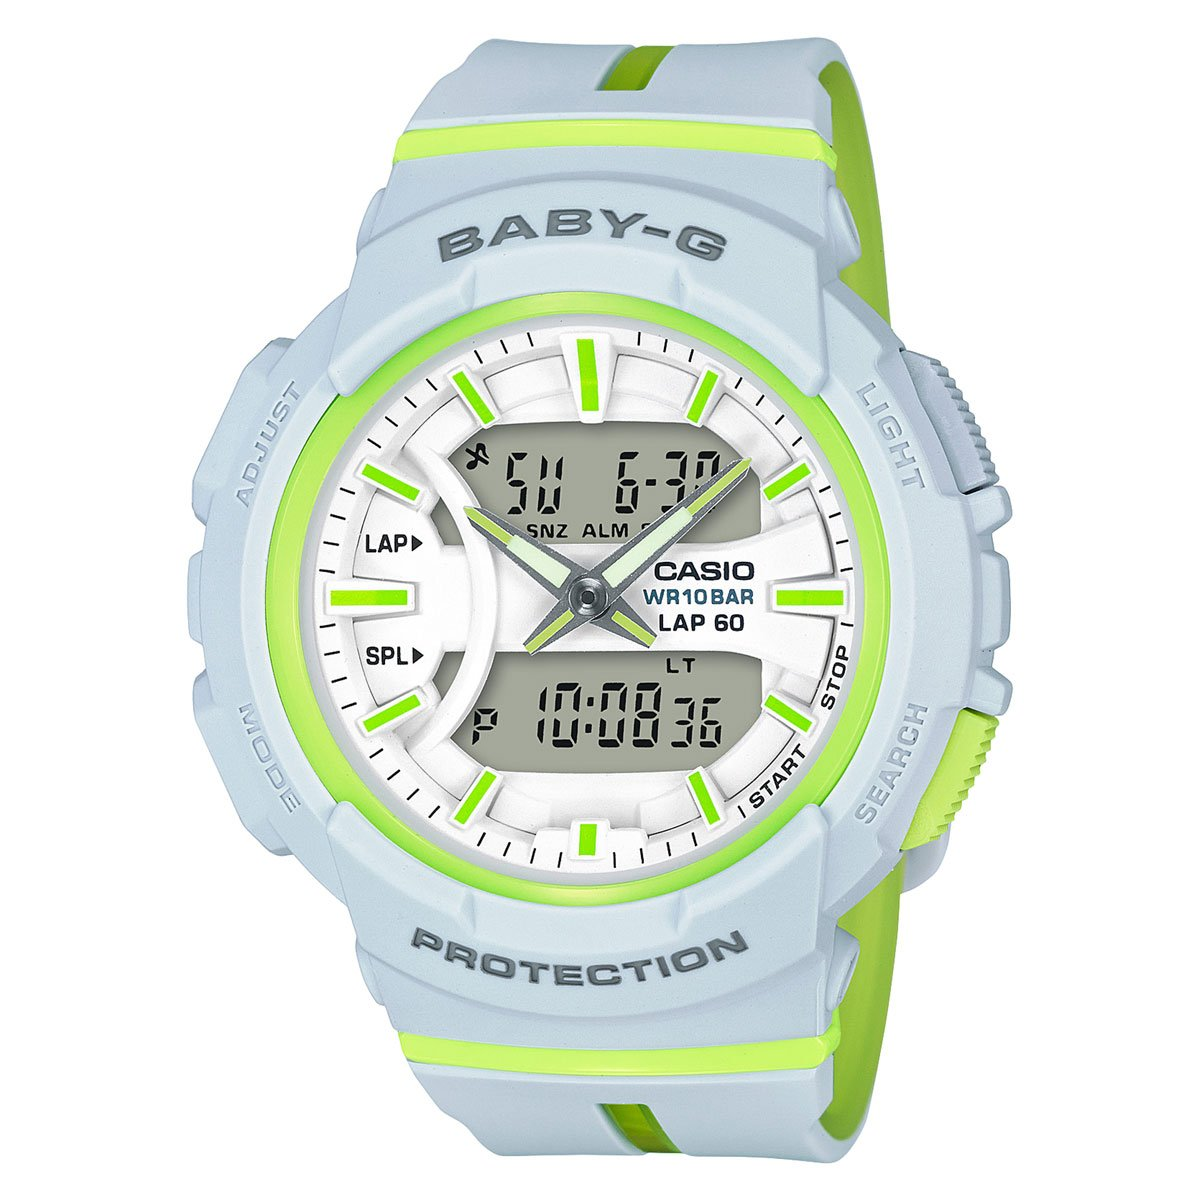 Casio Baby G Bga 240 Two Tone Series White Green Watch 180 2b Bga240l 7a Watches